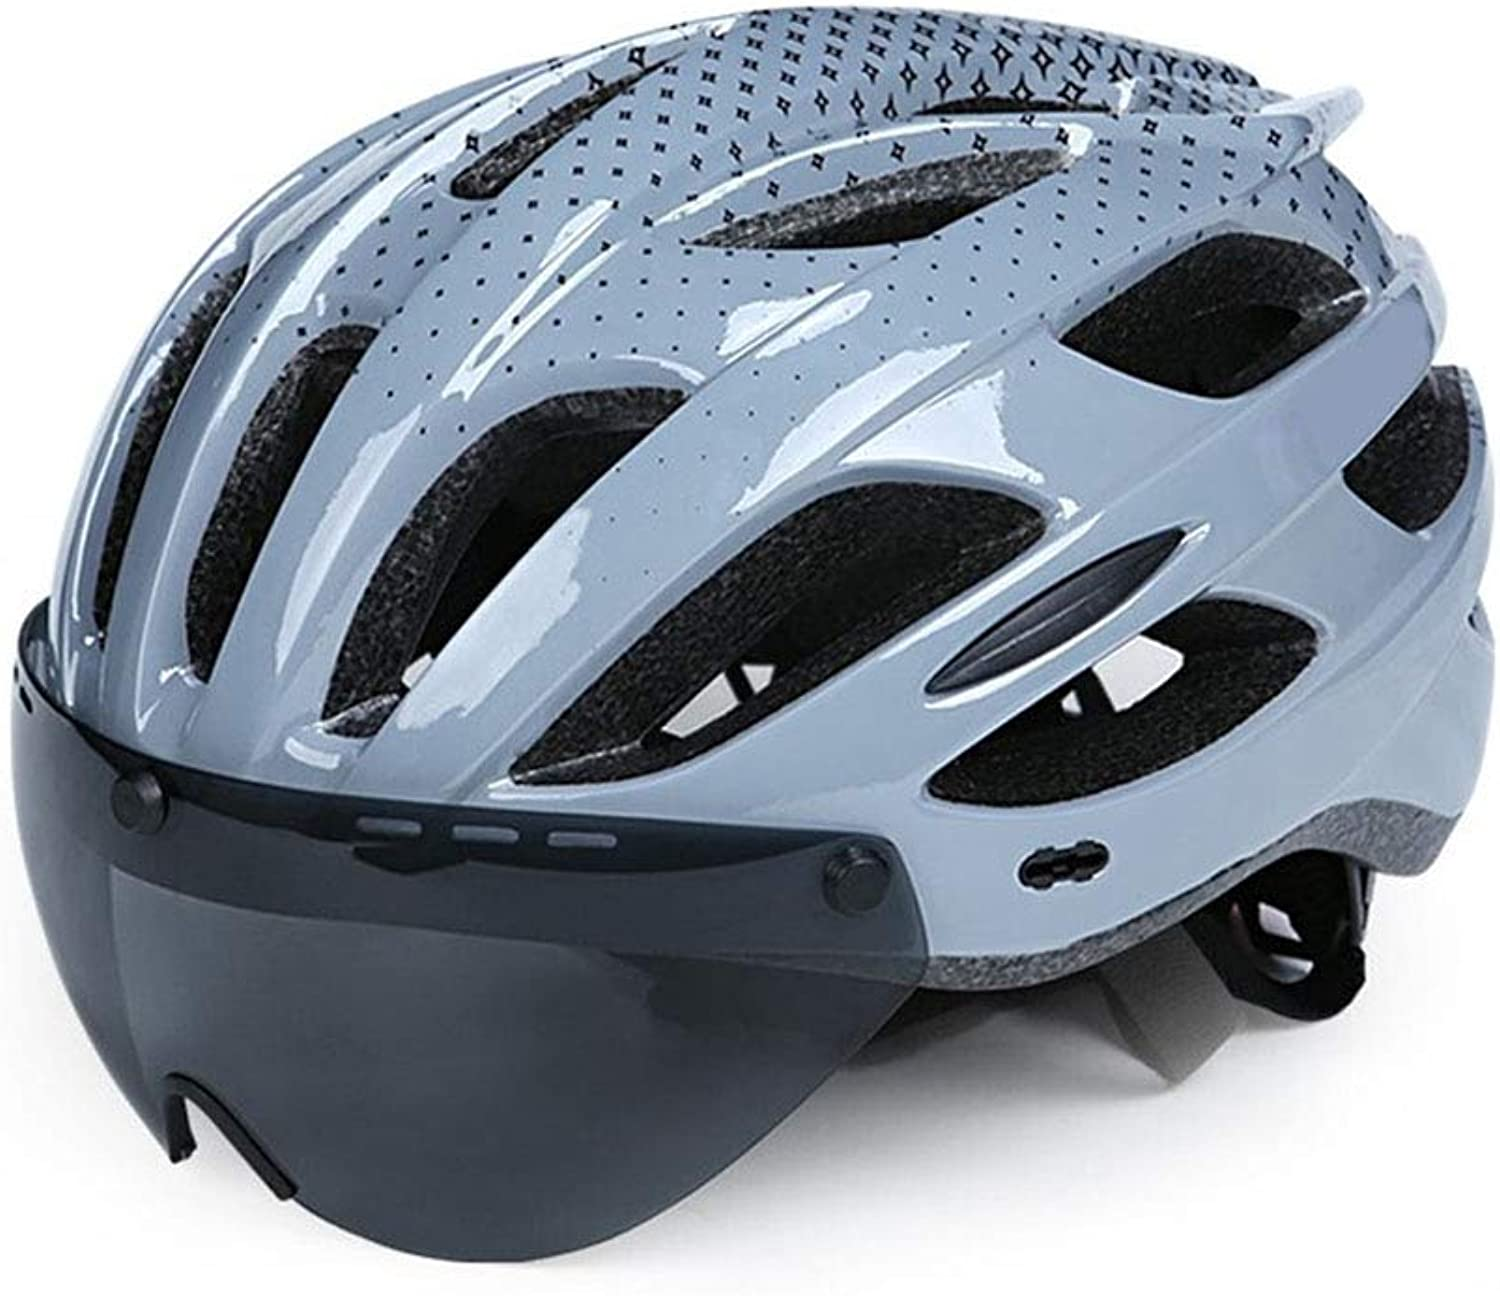 Cycling Helmet Integrated Bicycle Helmet Men and Women with Goggles Road Mountain Equipment Black